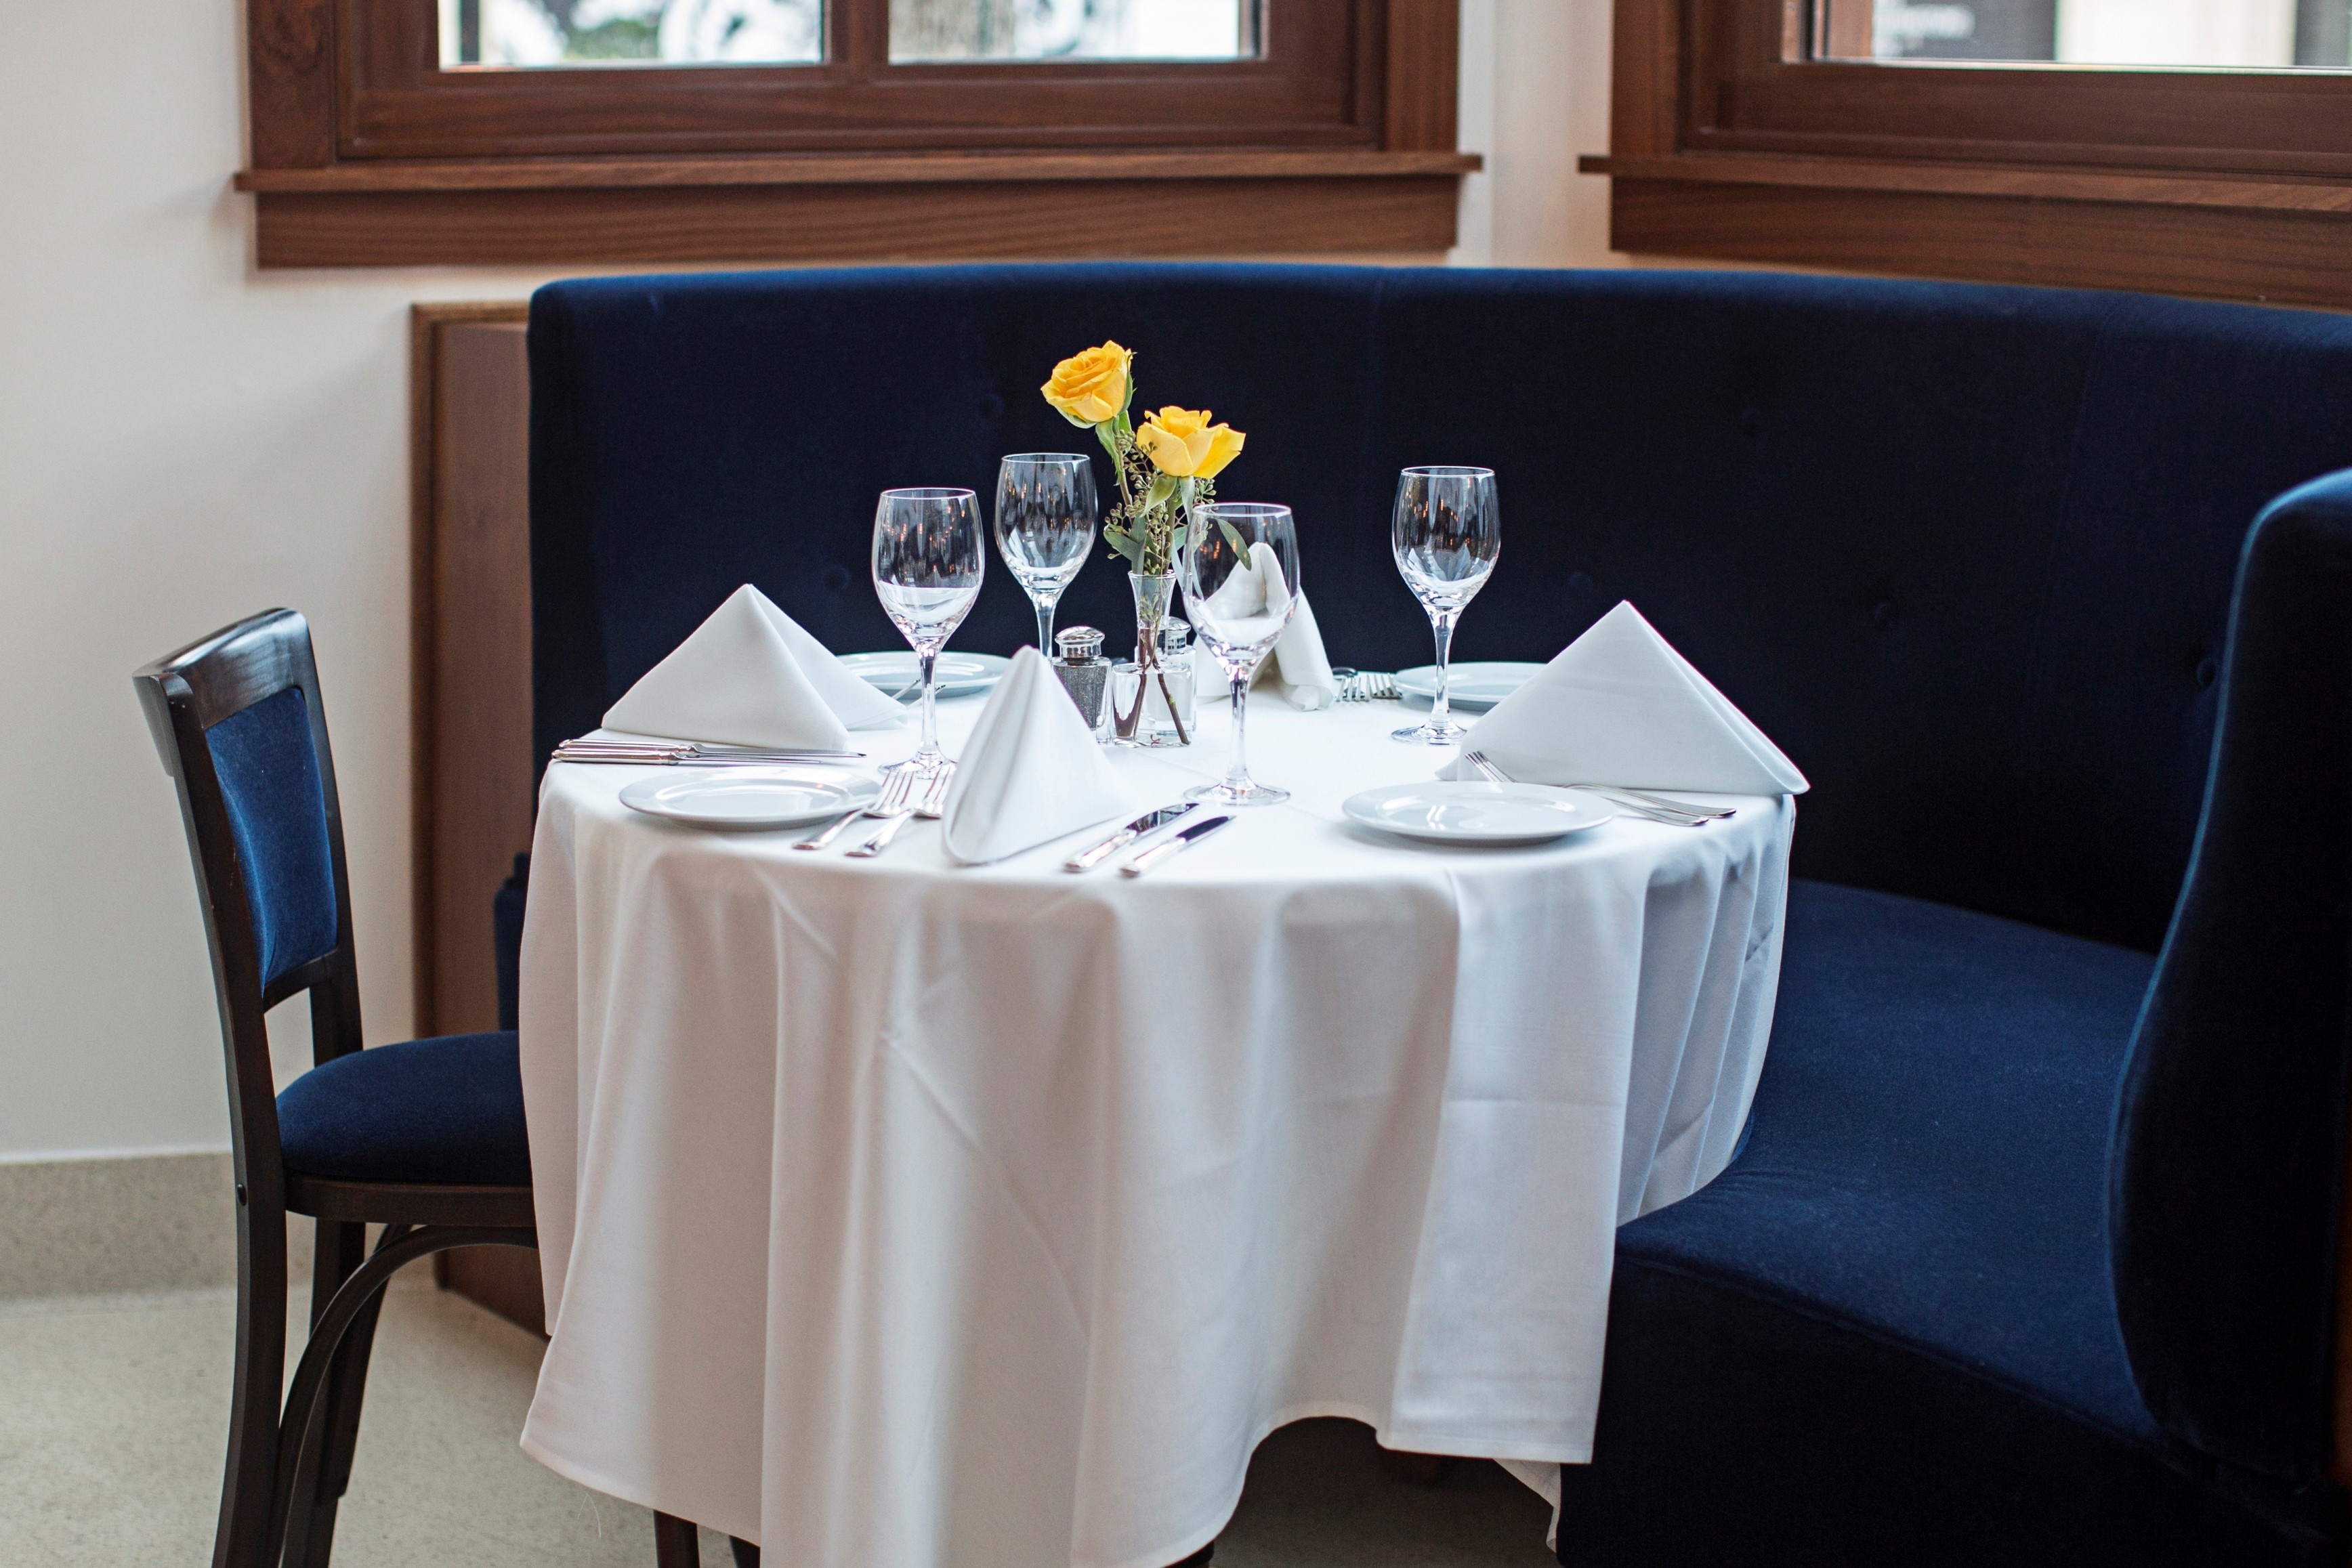 Traditional banquettes covered in rich blue velvet line the perimeter of the modern French bistro.